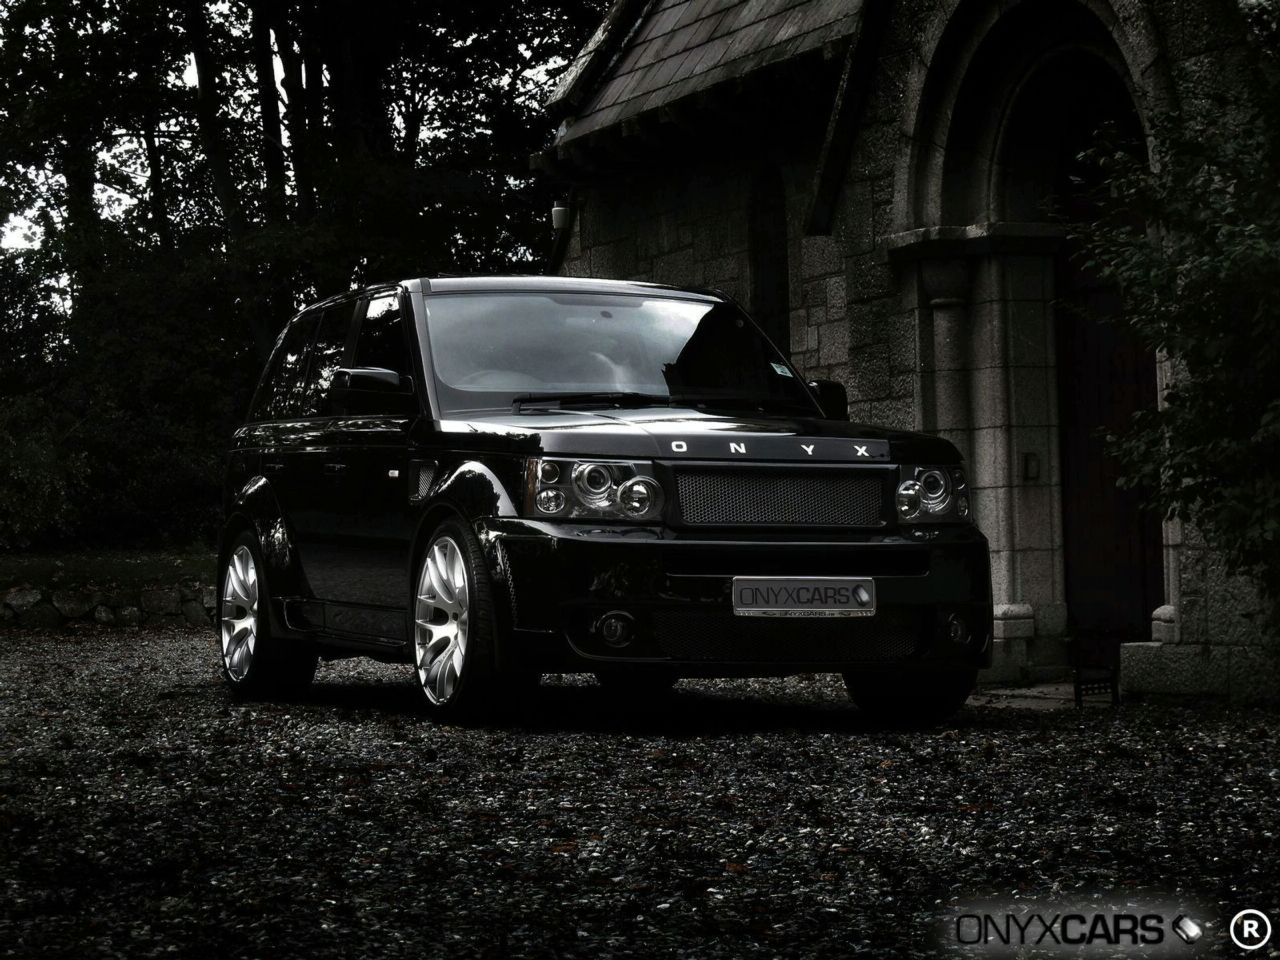 Onyx Concept Based On The Range Rover Sport | Top Speed